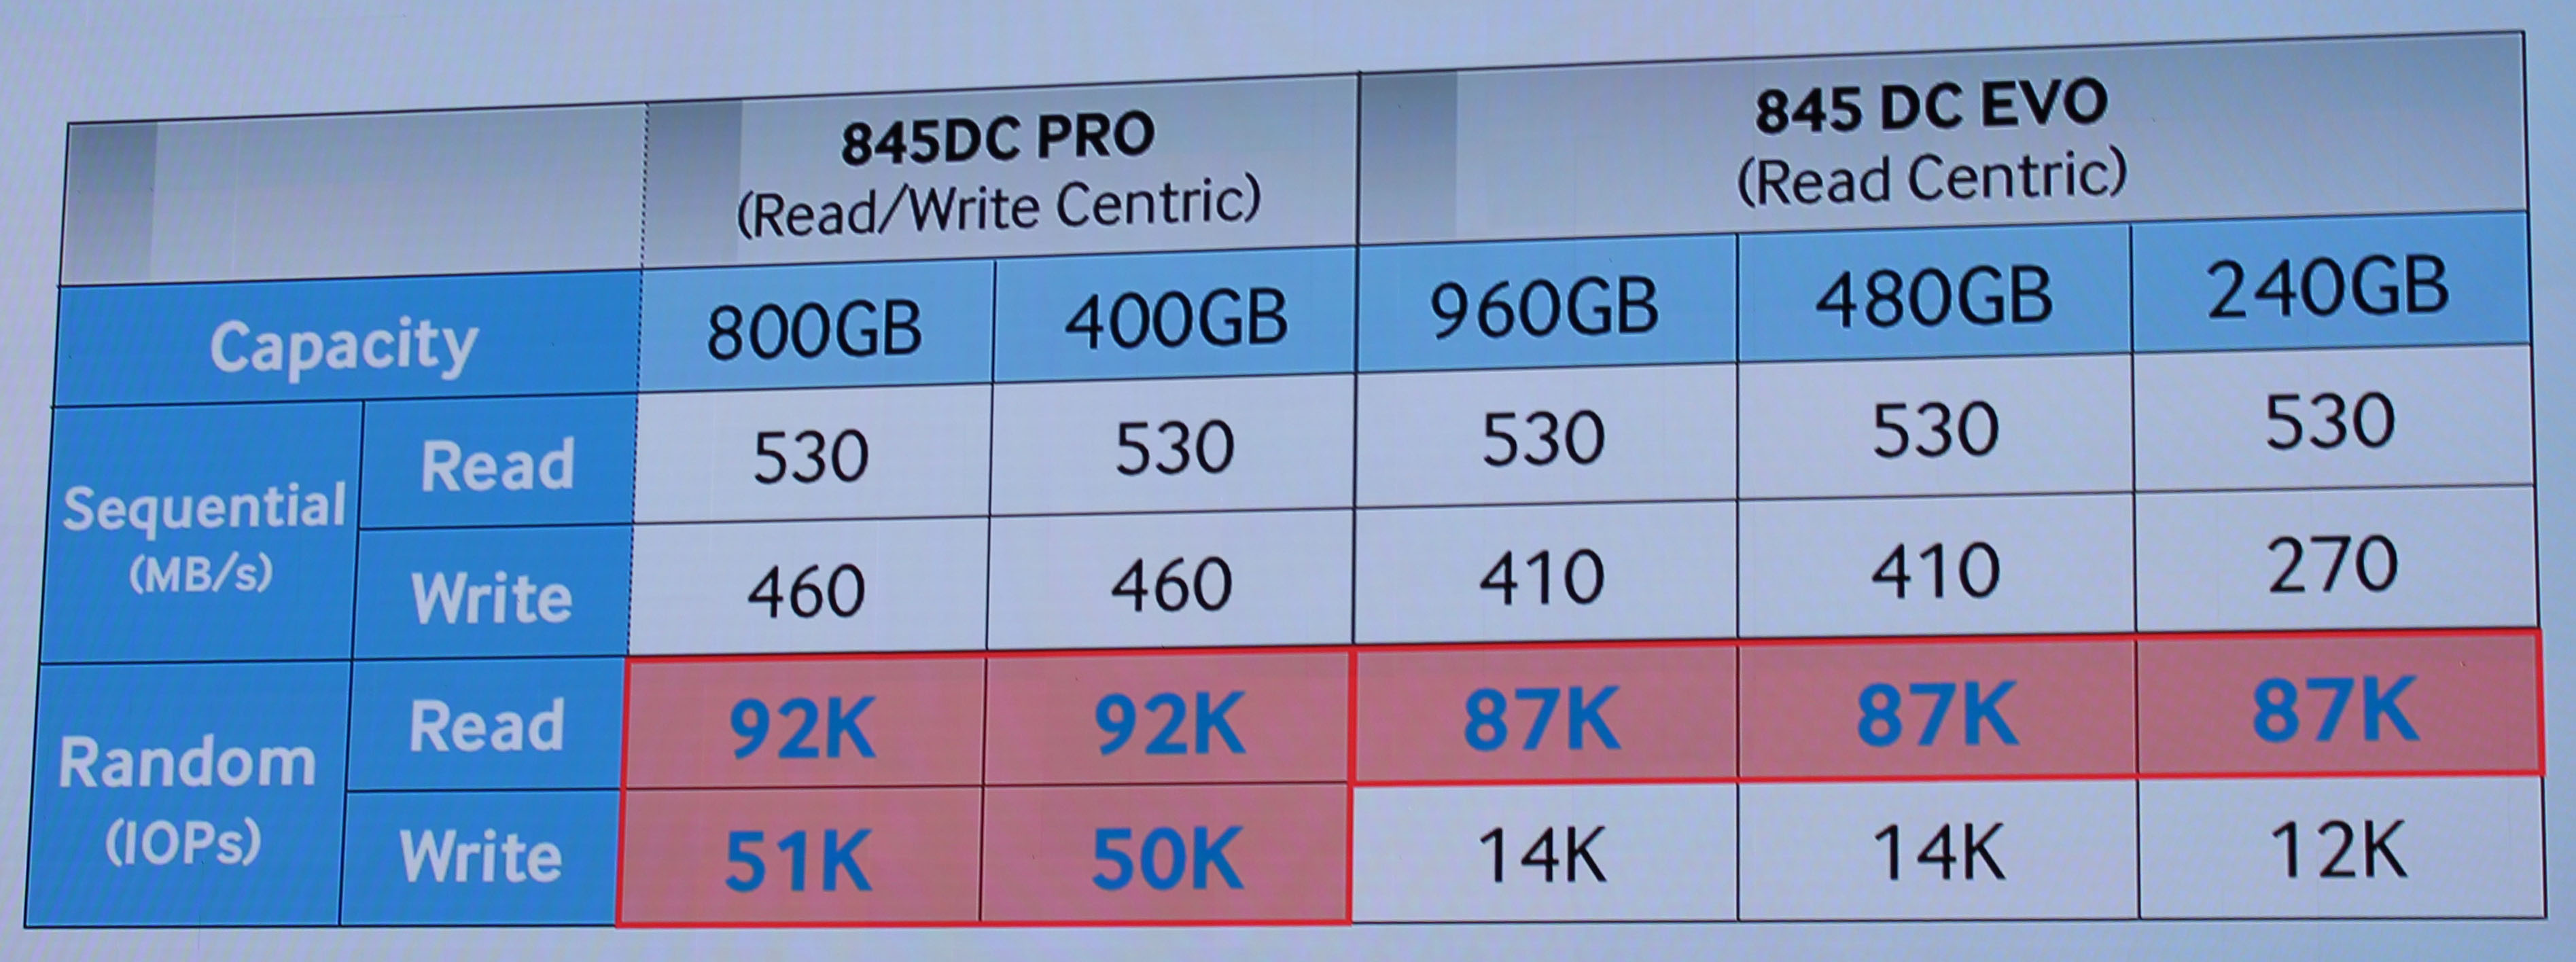 Samsung SSD Global Summit 2014: 845 DC Pro with V-NAND, SM951 with